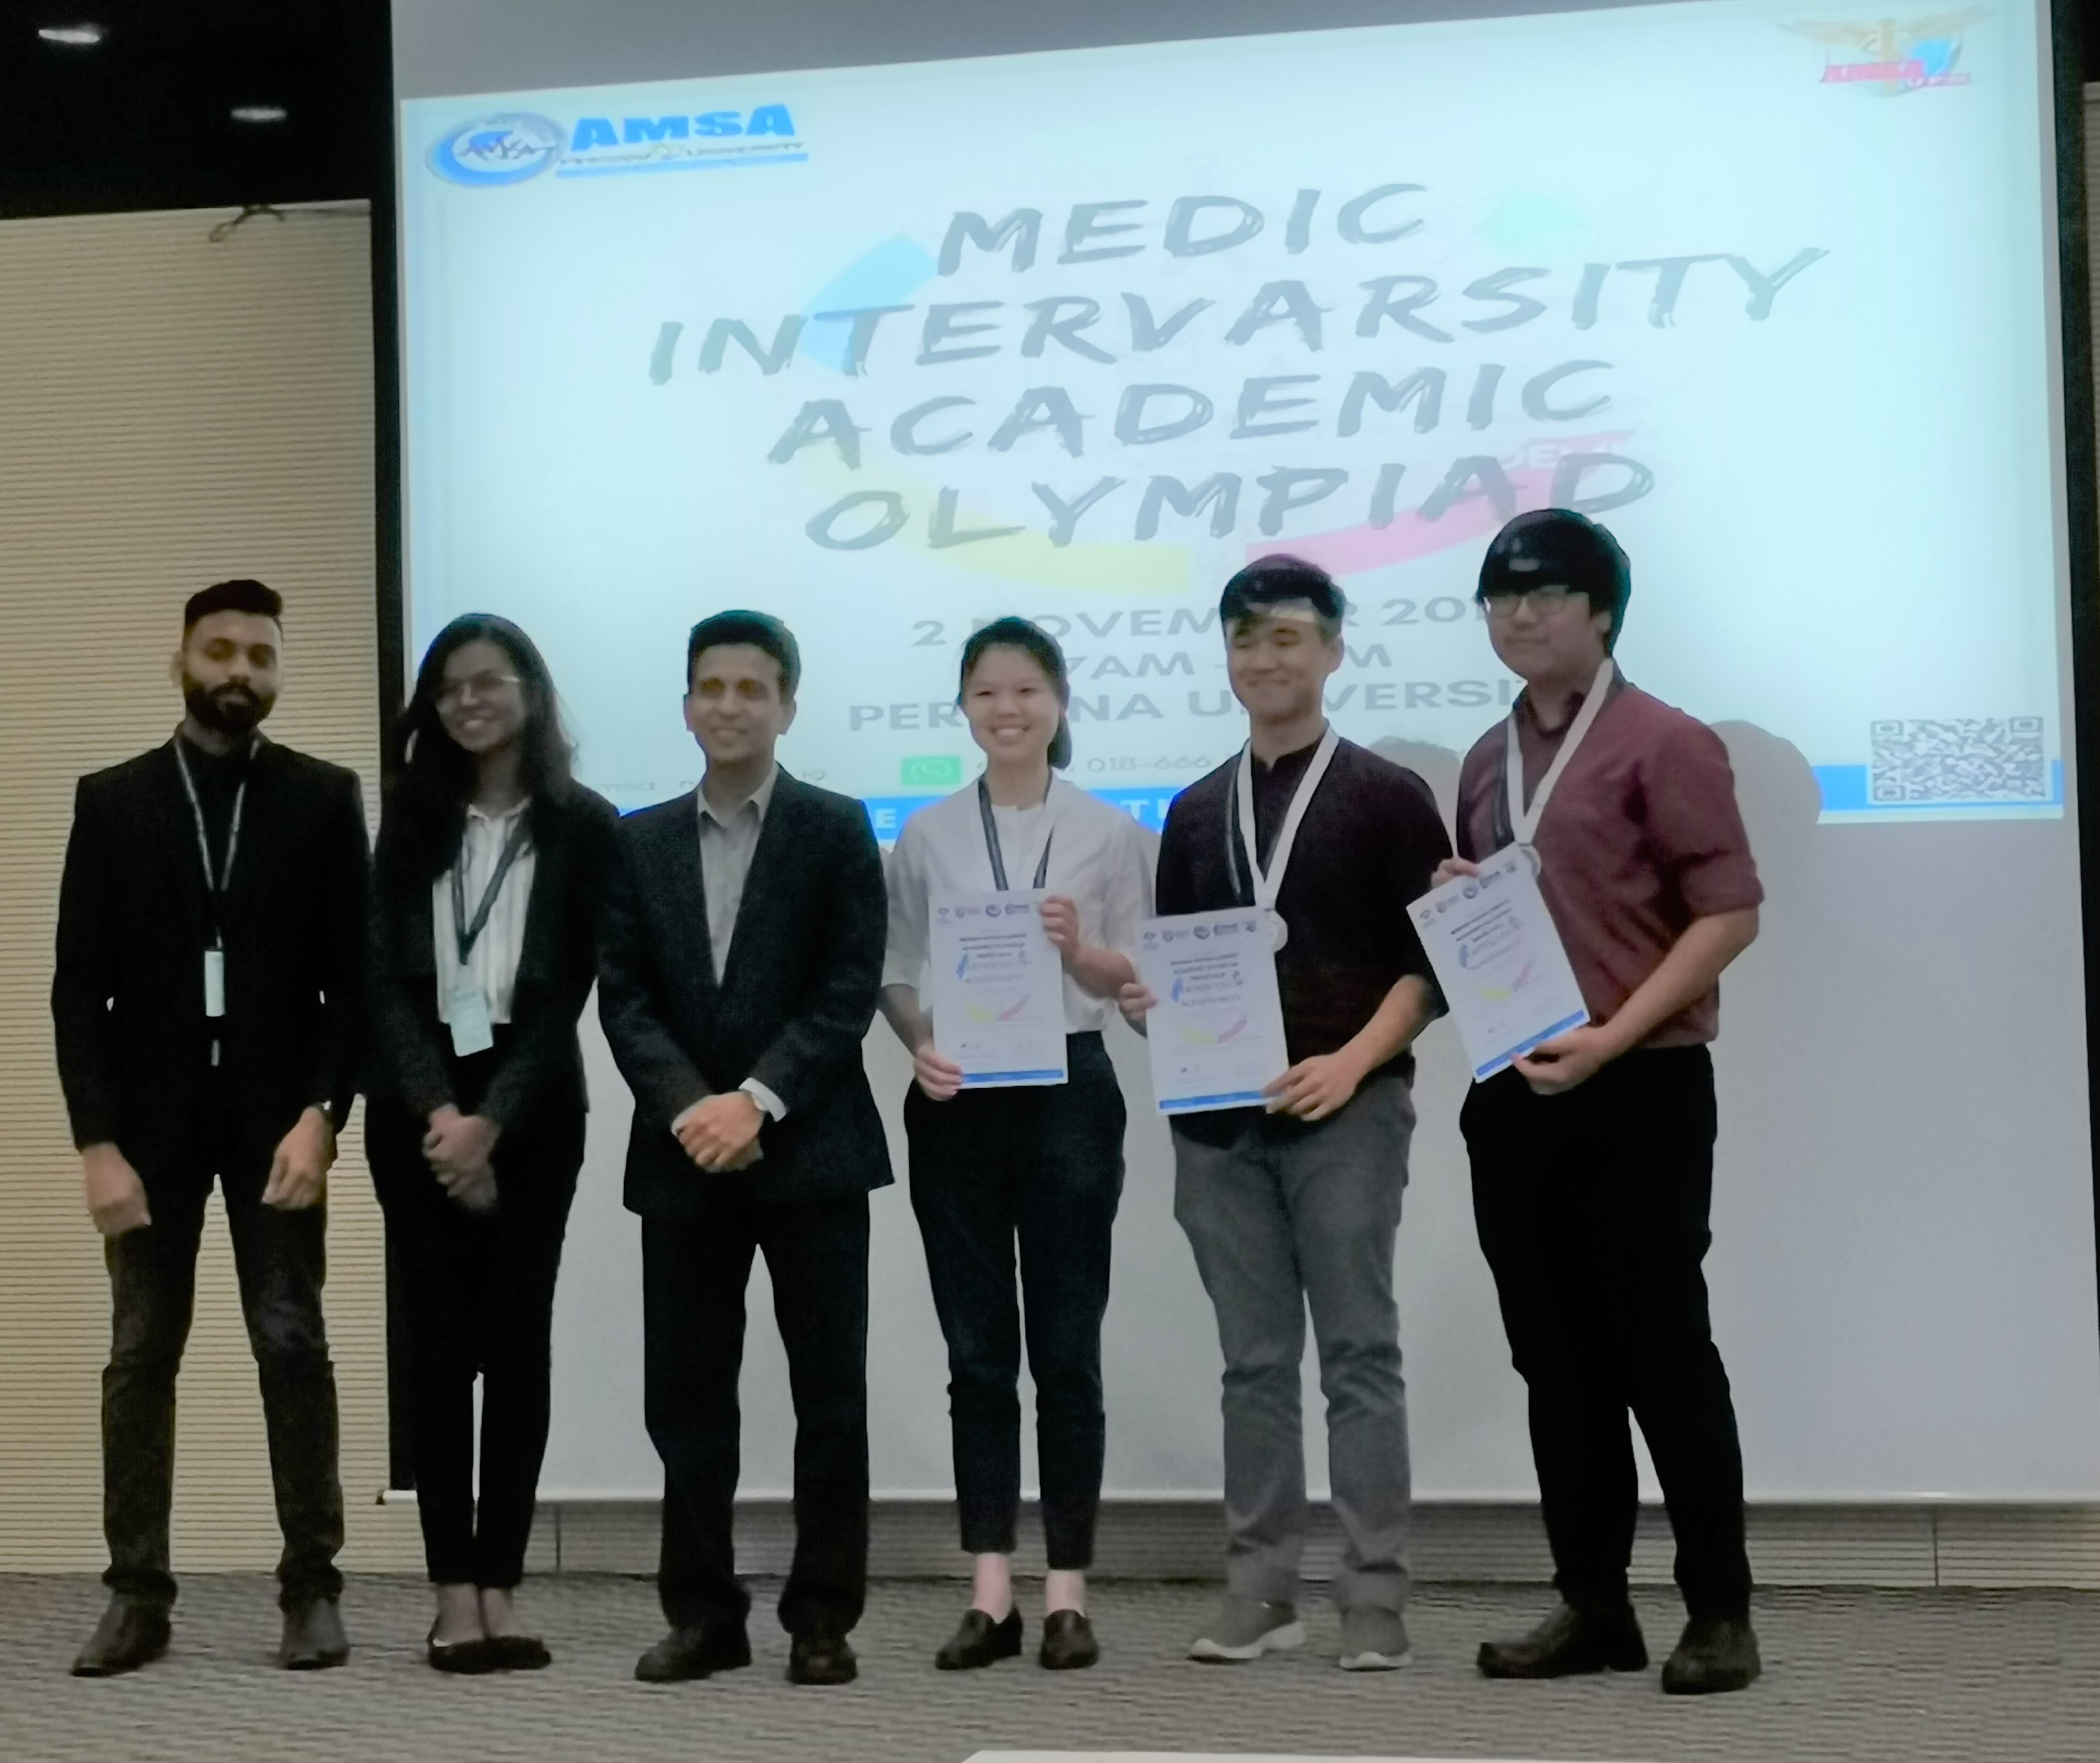 3 IMU medical students competed in the Anatomy viva and OSCE competitions of the Medics Intervarsity Academic Olympiad (MIAO) 2019 and won the second prize.